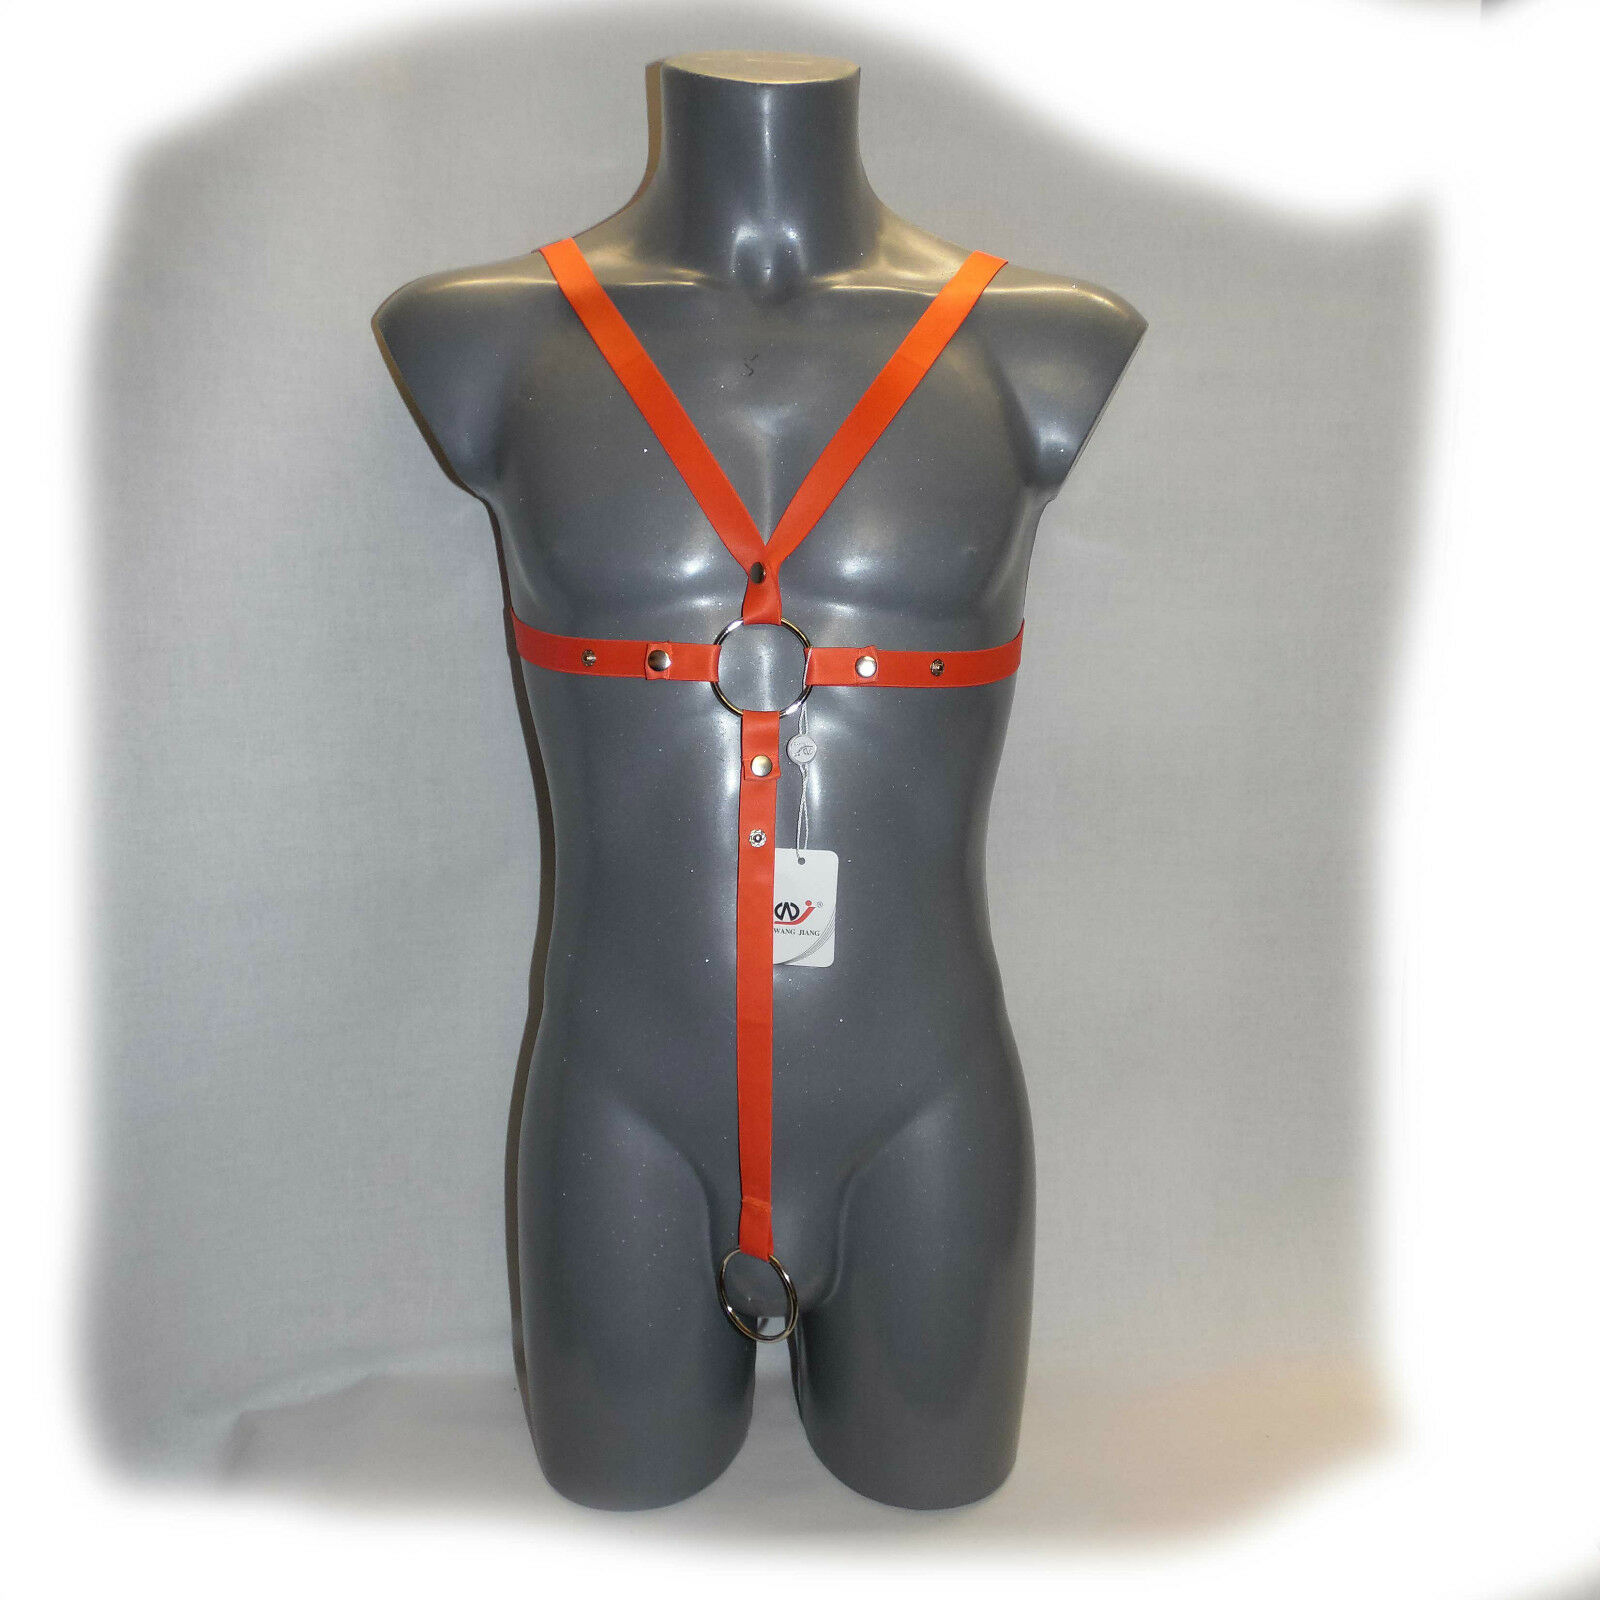 WJ - Riemenbody Orange - extra heiß -  (525)